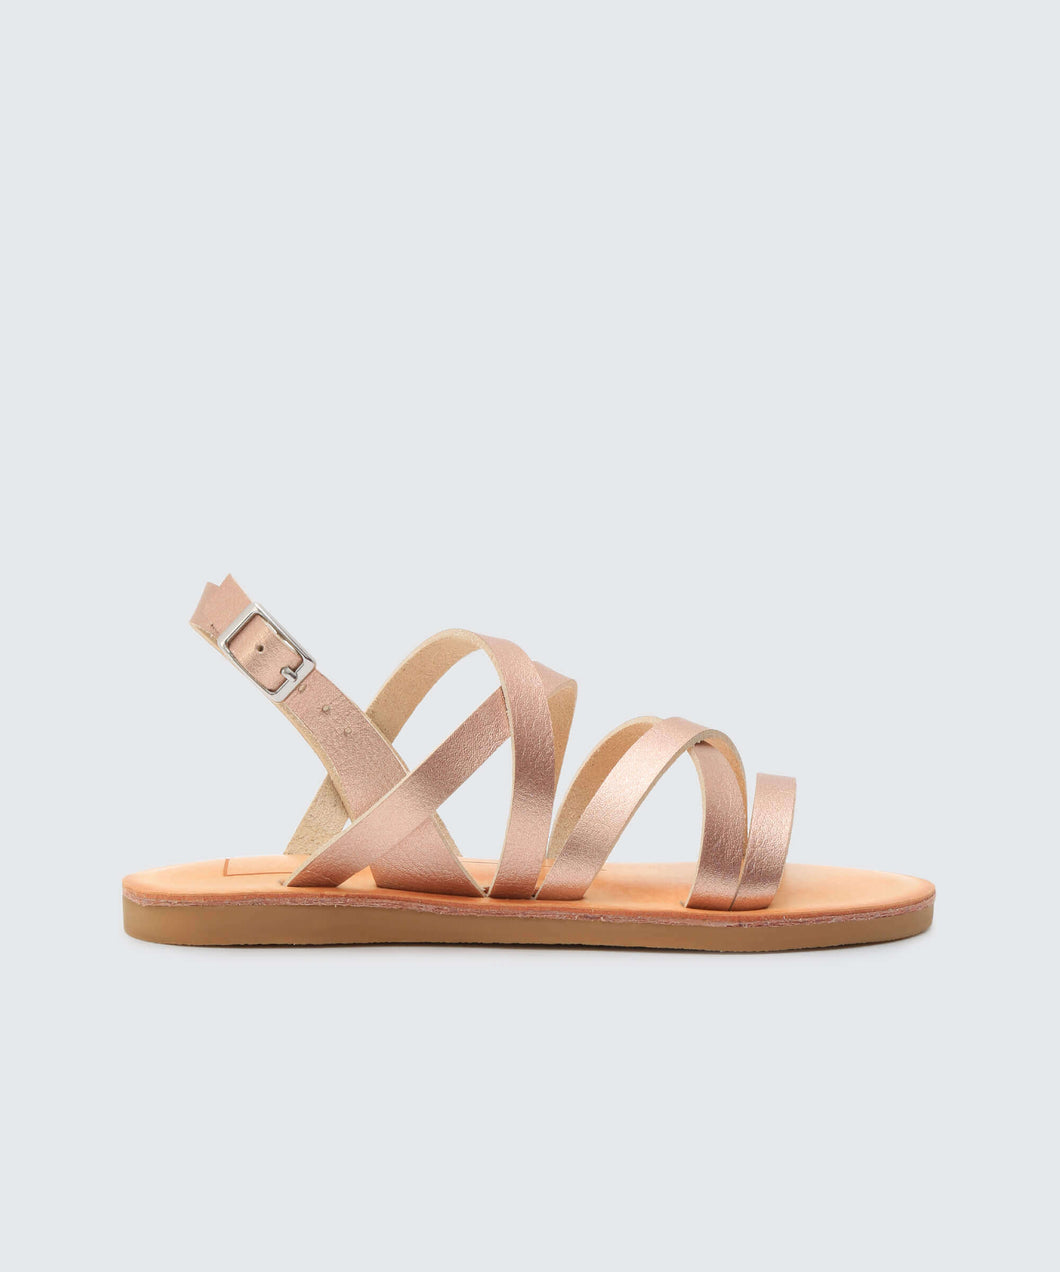 JAHNE SANDALS ROSE GOLD -   Dolce Vita